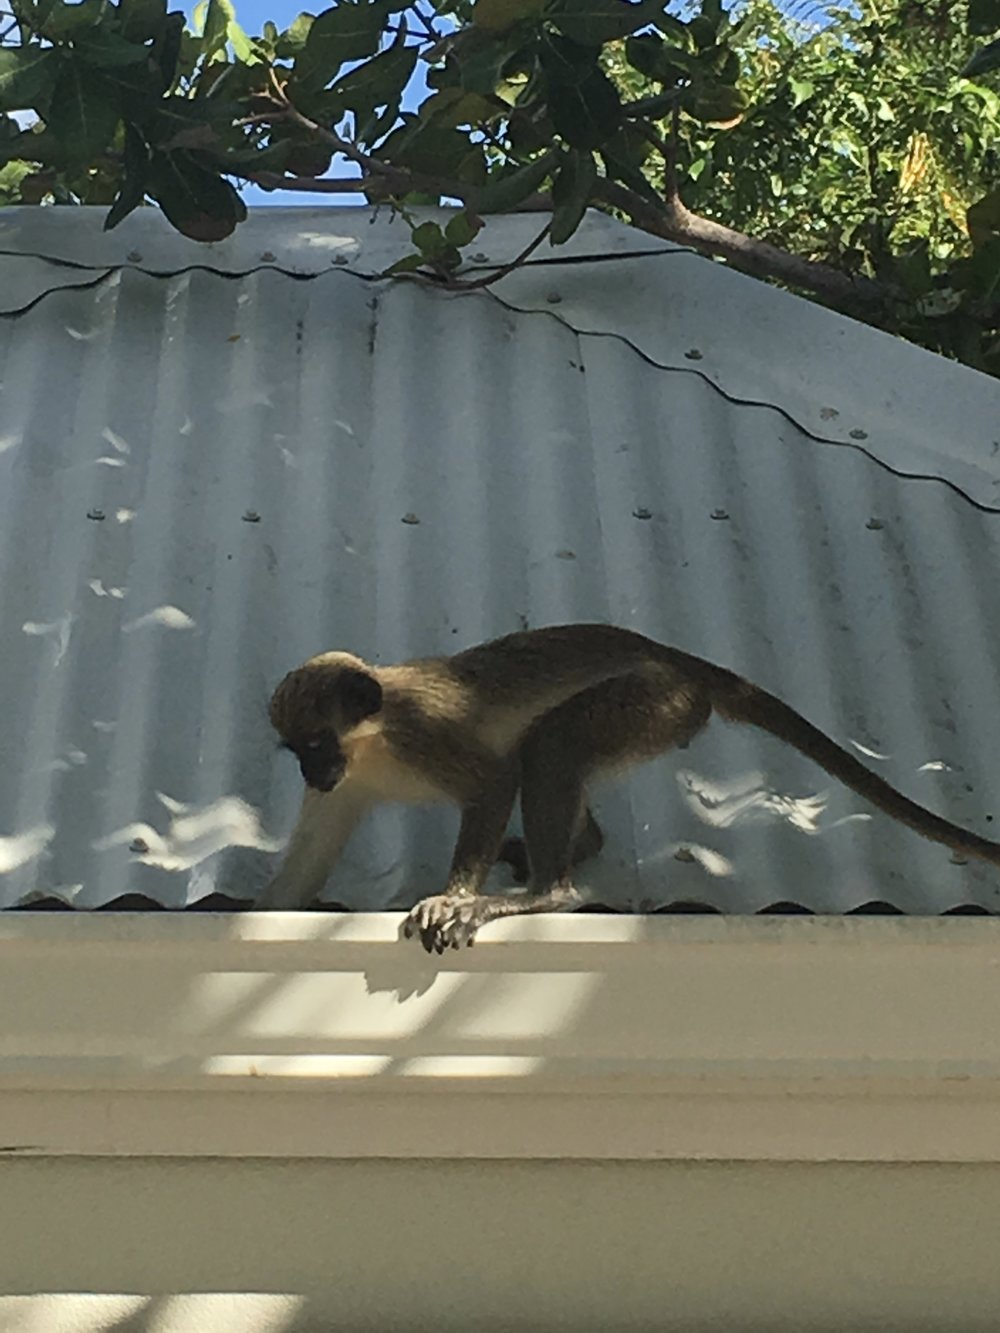 vervet monkeys snacking on the mango trees scattered about the property.